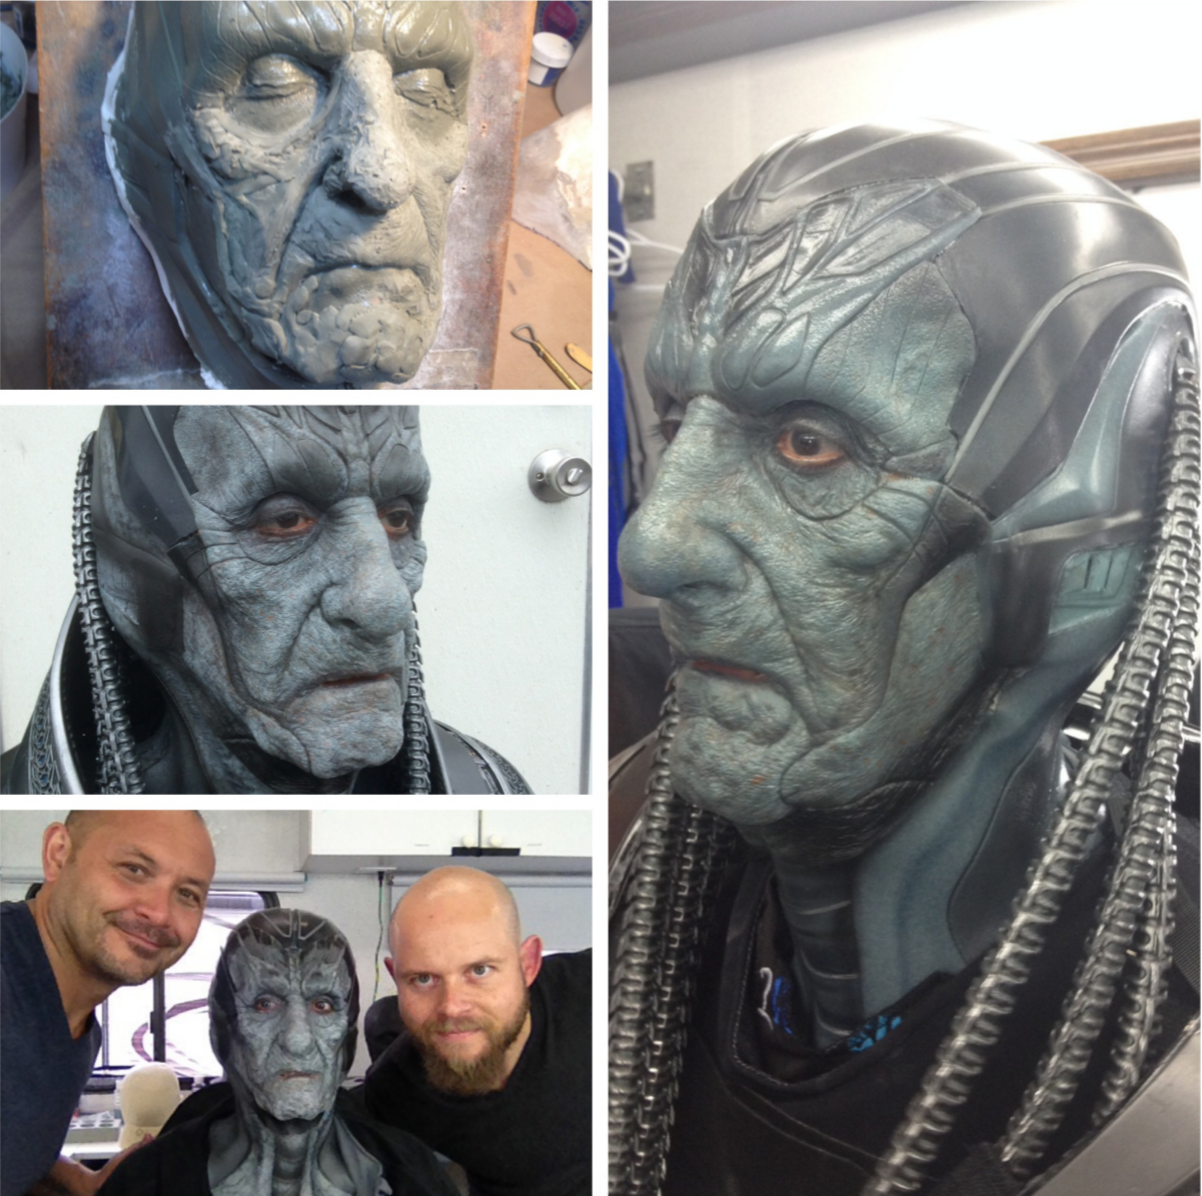 """Another fun character that we got to create at Legacy Effects....""""Old Apocalypse.""""  We  utilized some of the same elements from Oscar's makeup, so that there  would be a through line for the characters. Truth be told, the actor  Berge', had a great face to start with. It made creating the old and  weathered version Apocalypse easier. I roughed in the sculpture, then  Scott Stoddard @chewmakdatchosef , and I refined the shapes and took it  to final detail. From there it moved through the machine which is Legacy  Effects through the molding and silicone departments. If this passed  through your hands... Please tag yourself.  Once in Montreal,  Alexei Dmitriew @hookuptattoos, and I did the first makeup test. We did  him in grey tones with a lot of warm under tones. I really liked this  version best. Singer wanted him to have more of a connection to the  Oscar version, so he wanted to see a test in the Apocalypse real color.  That is the final version that makes it to screen (I hope). During the  shoot days, Alexei, Scott and Sabrina Wilson @sabswilson applied the  makeup."""